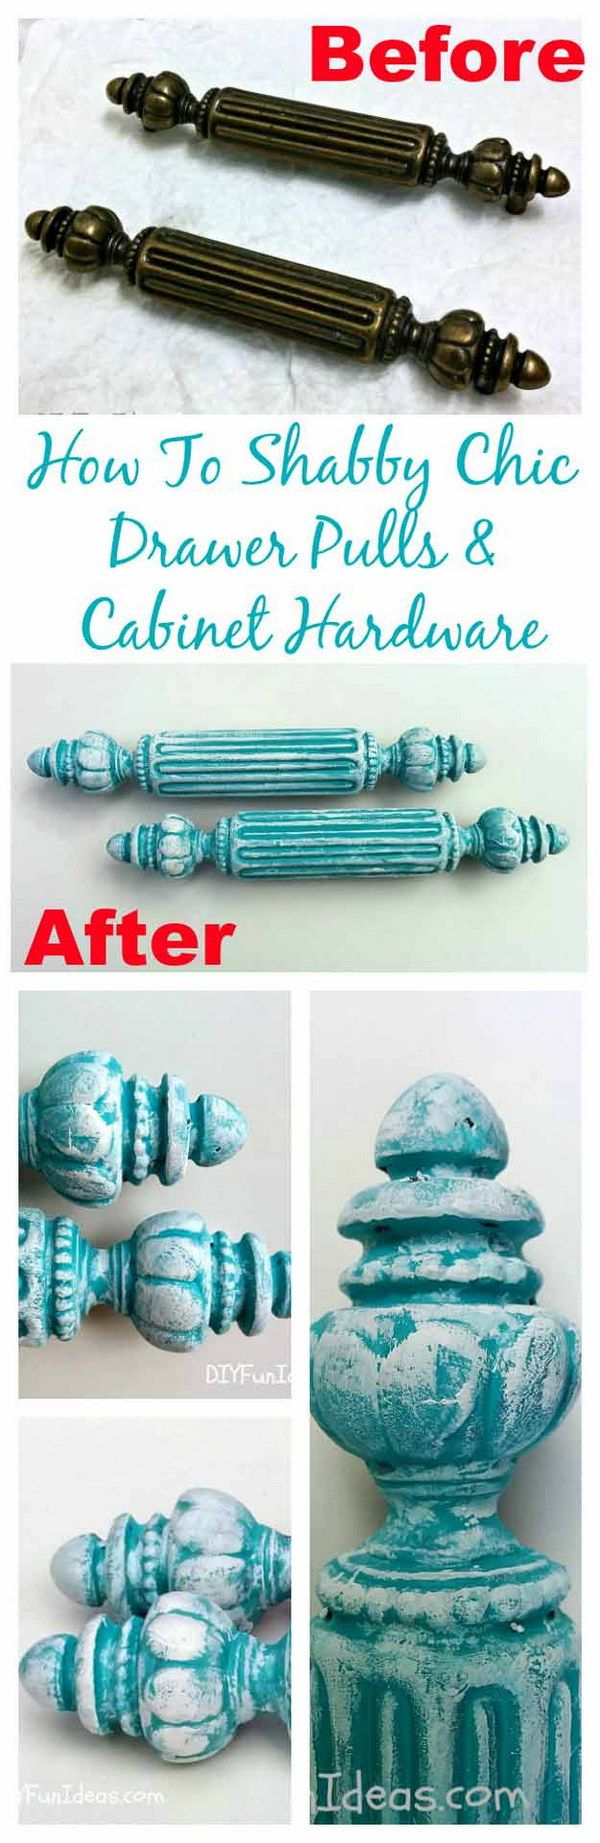 Shabby Chic Drawer Pulls and Cabinet Hardware